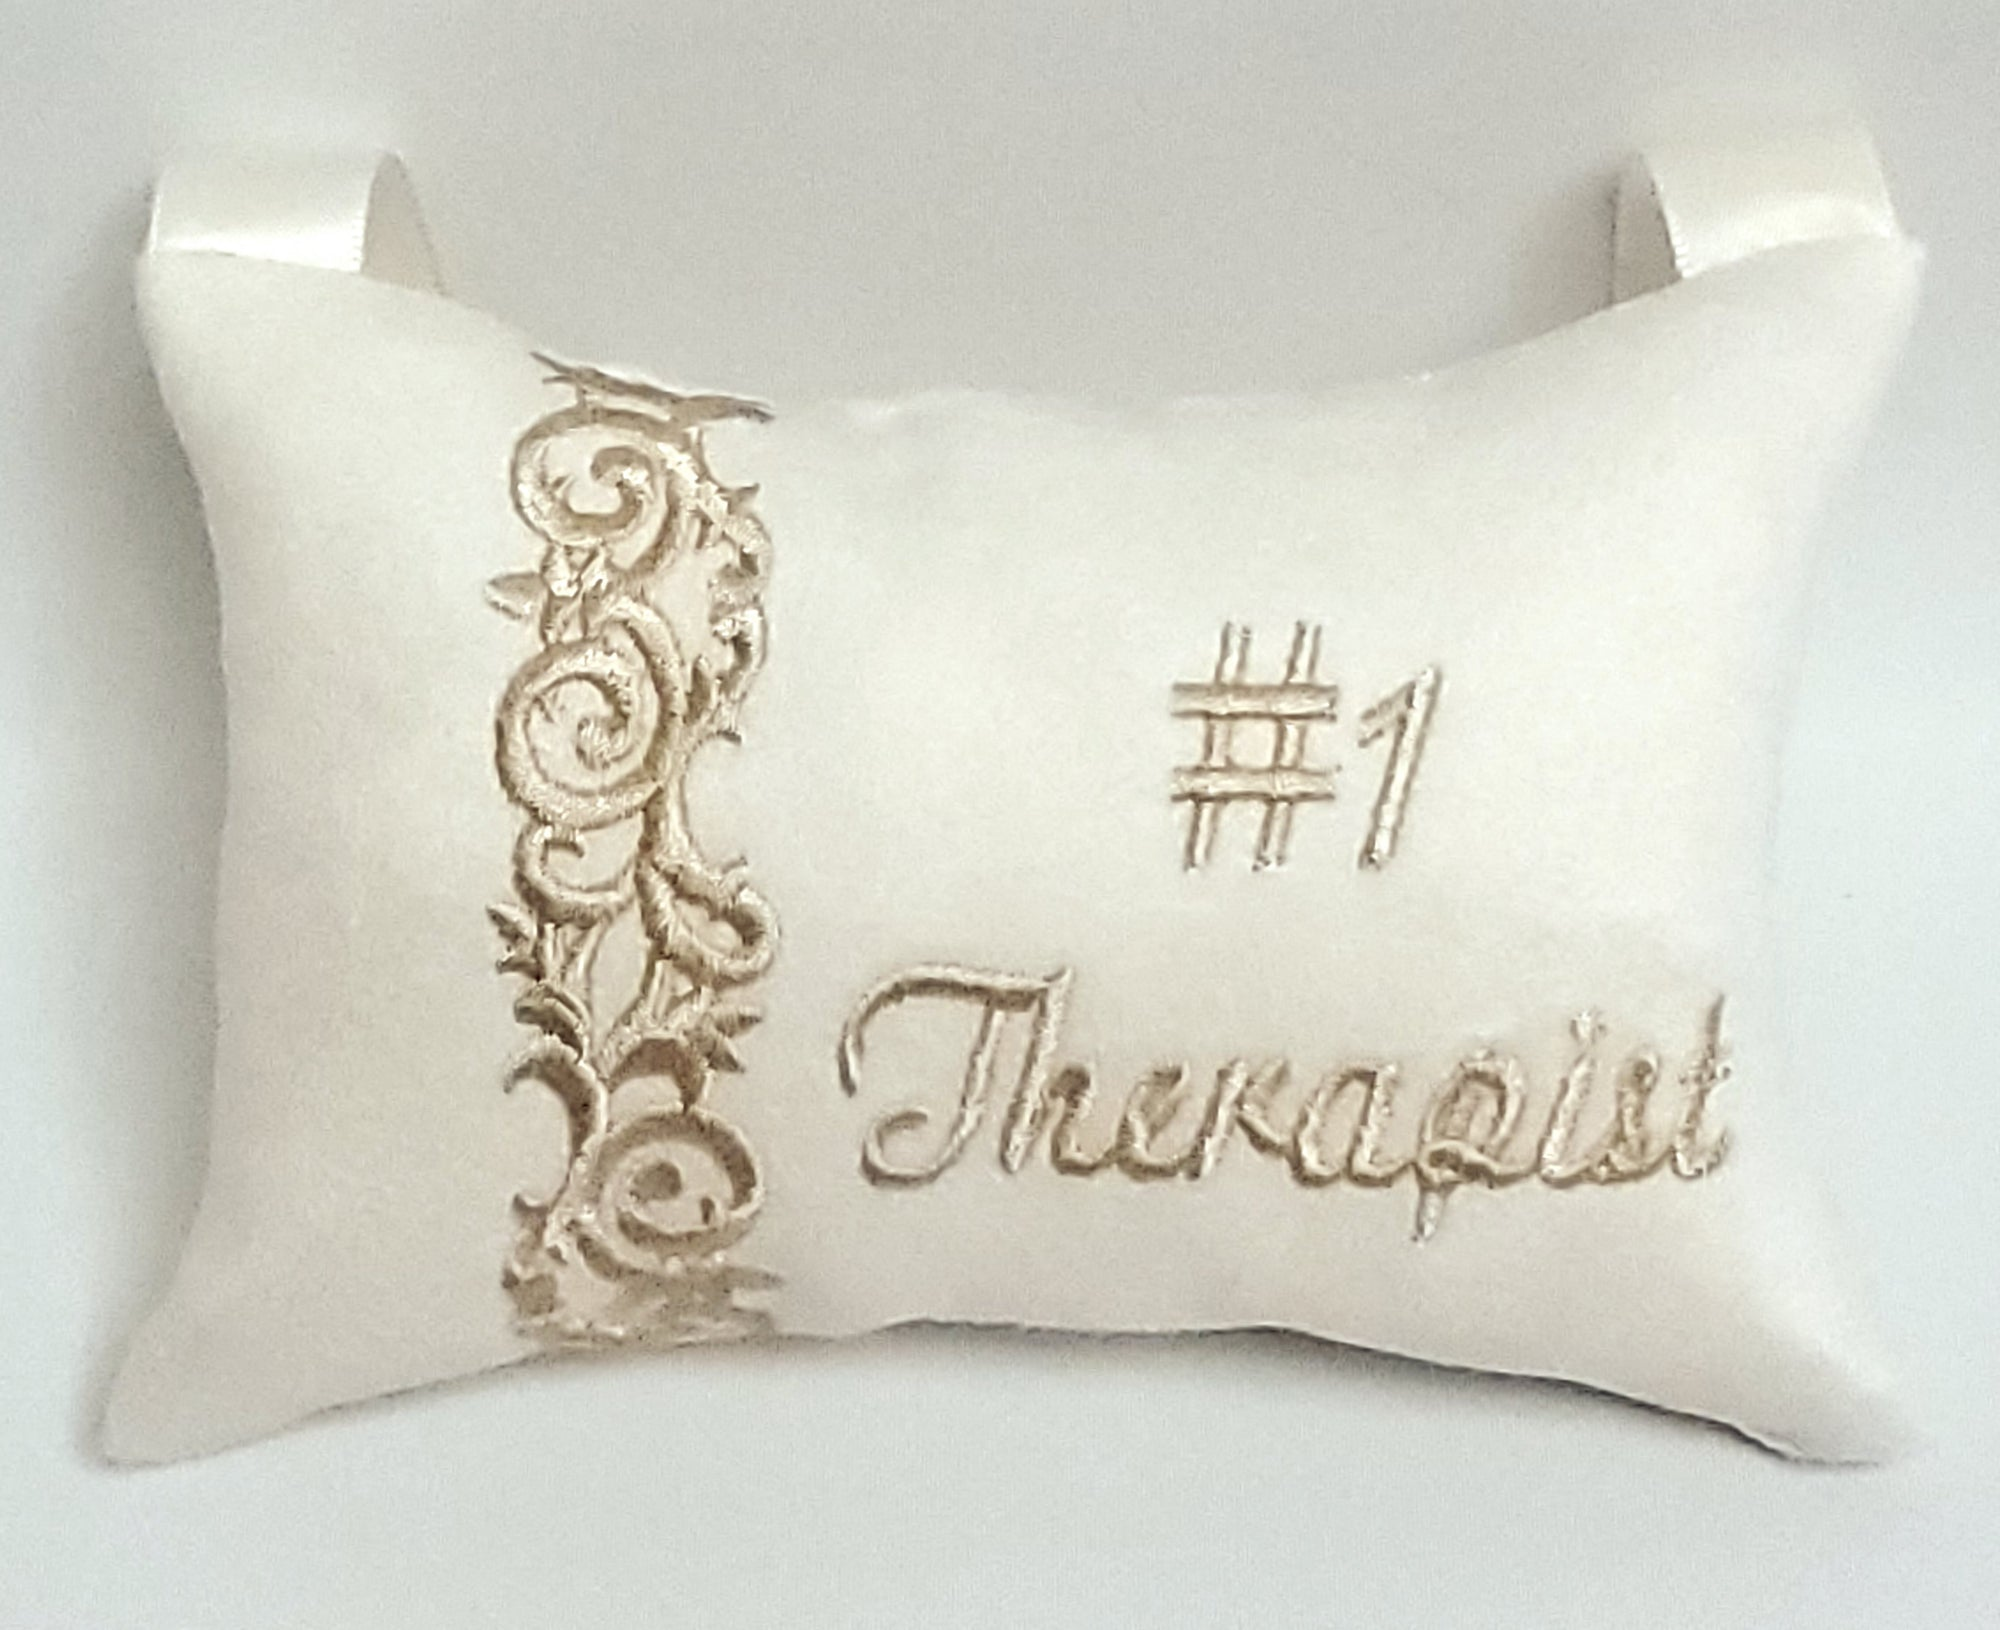 #1 Therapist Pillow